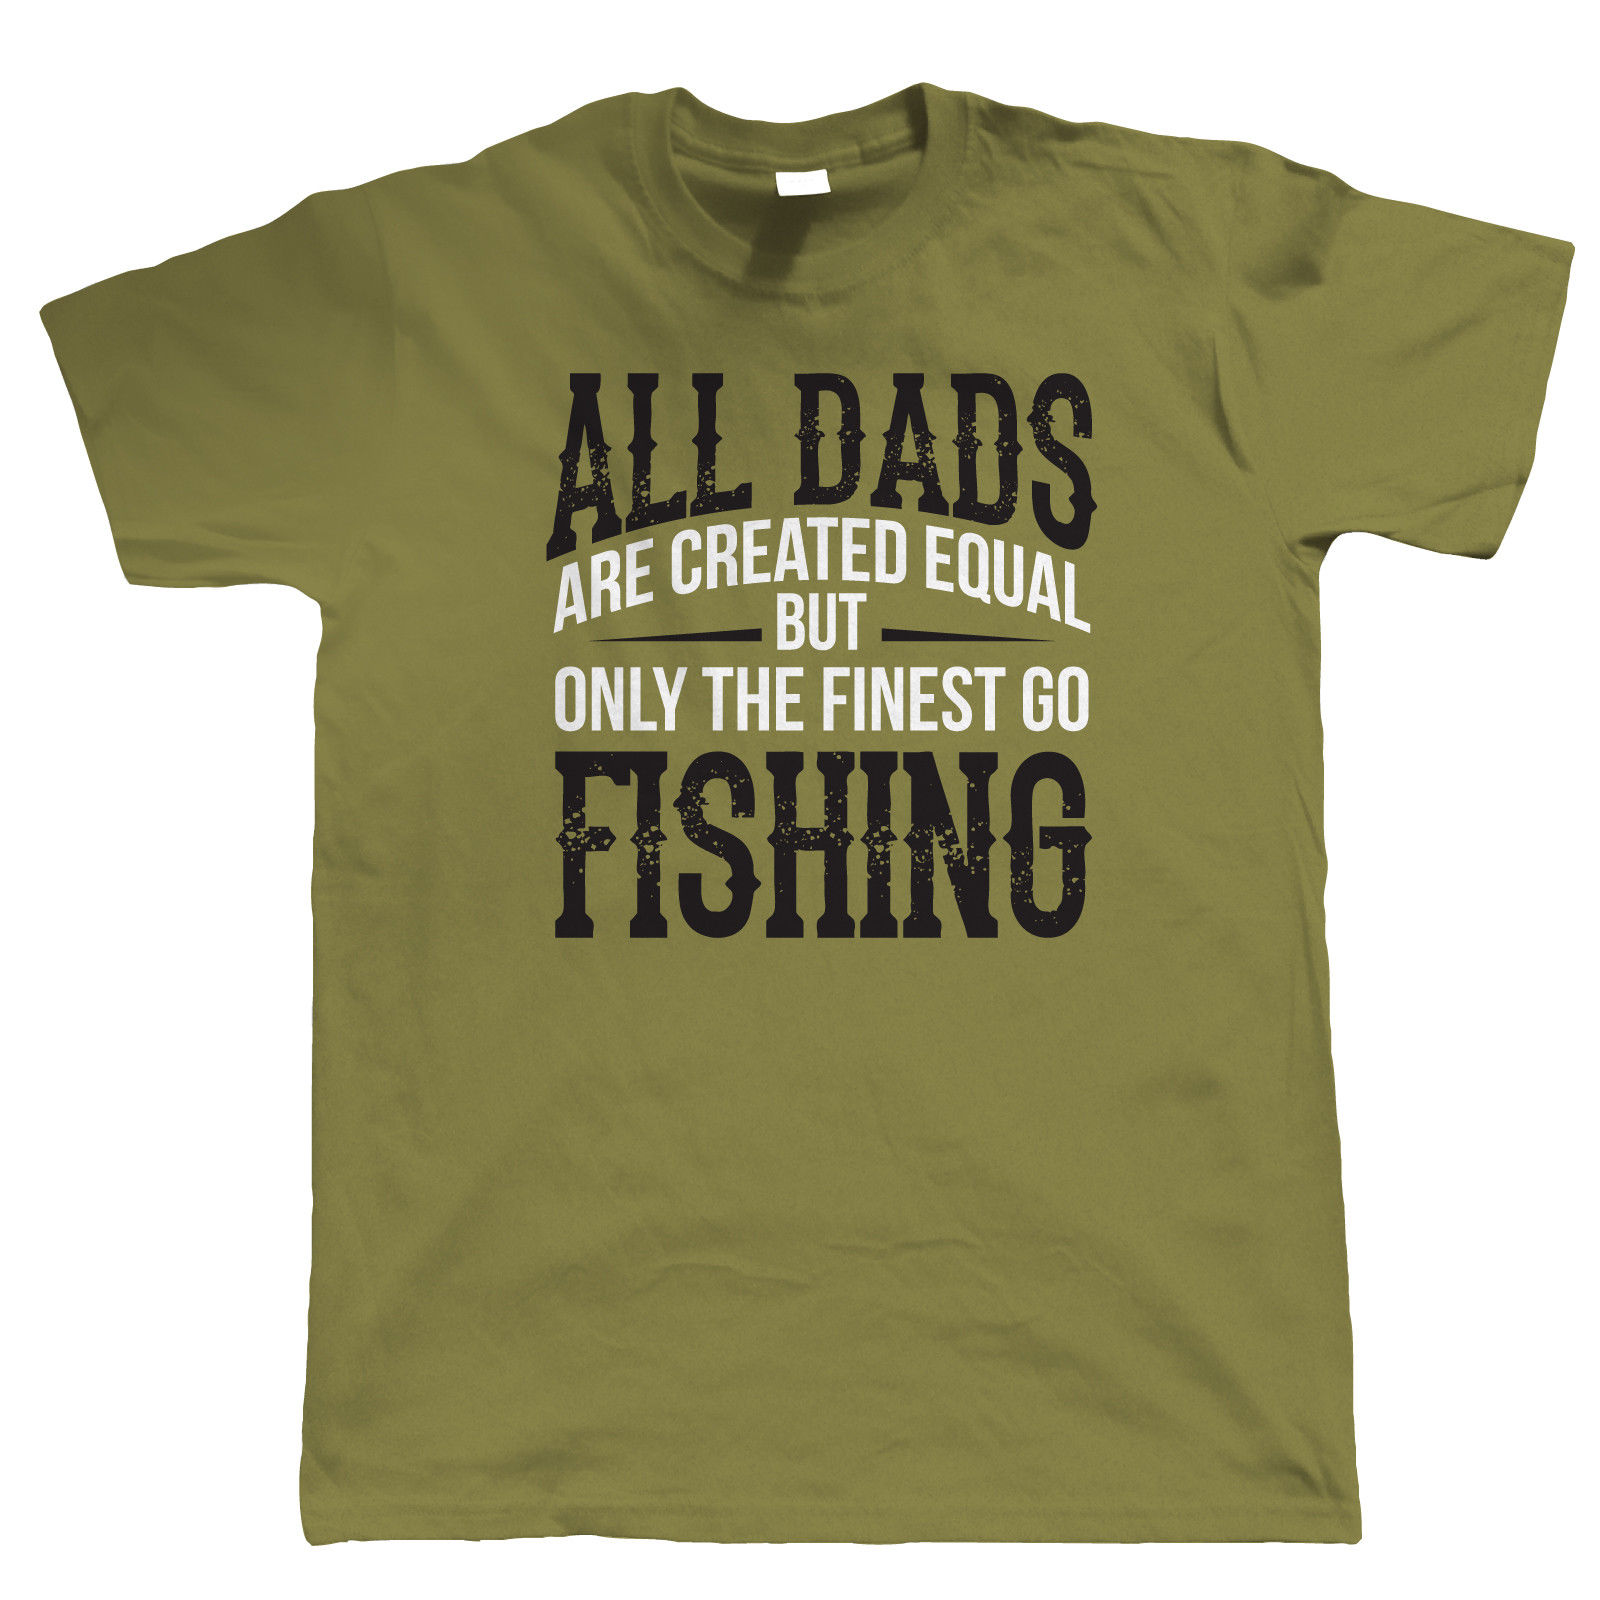 Finest Dads Go , Mens T Shirt - Fathers Day Birthday Carp Gift Dad Xmas New T Shirts Funny Tops Tee New Unisex Funny Tops